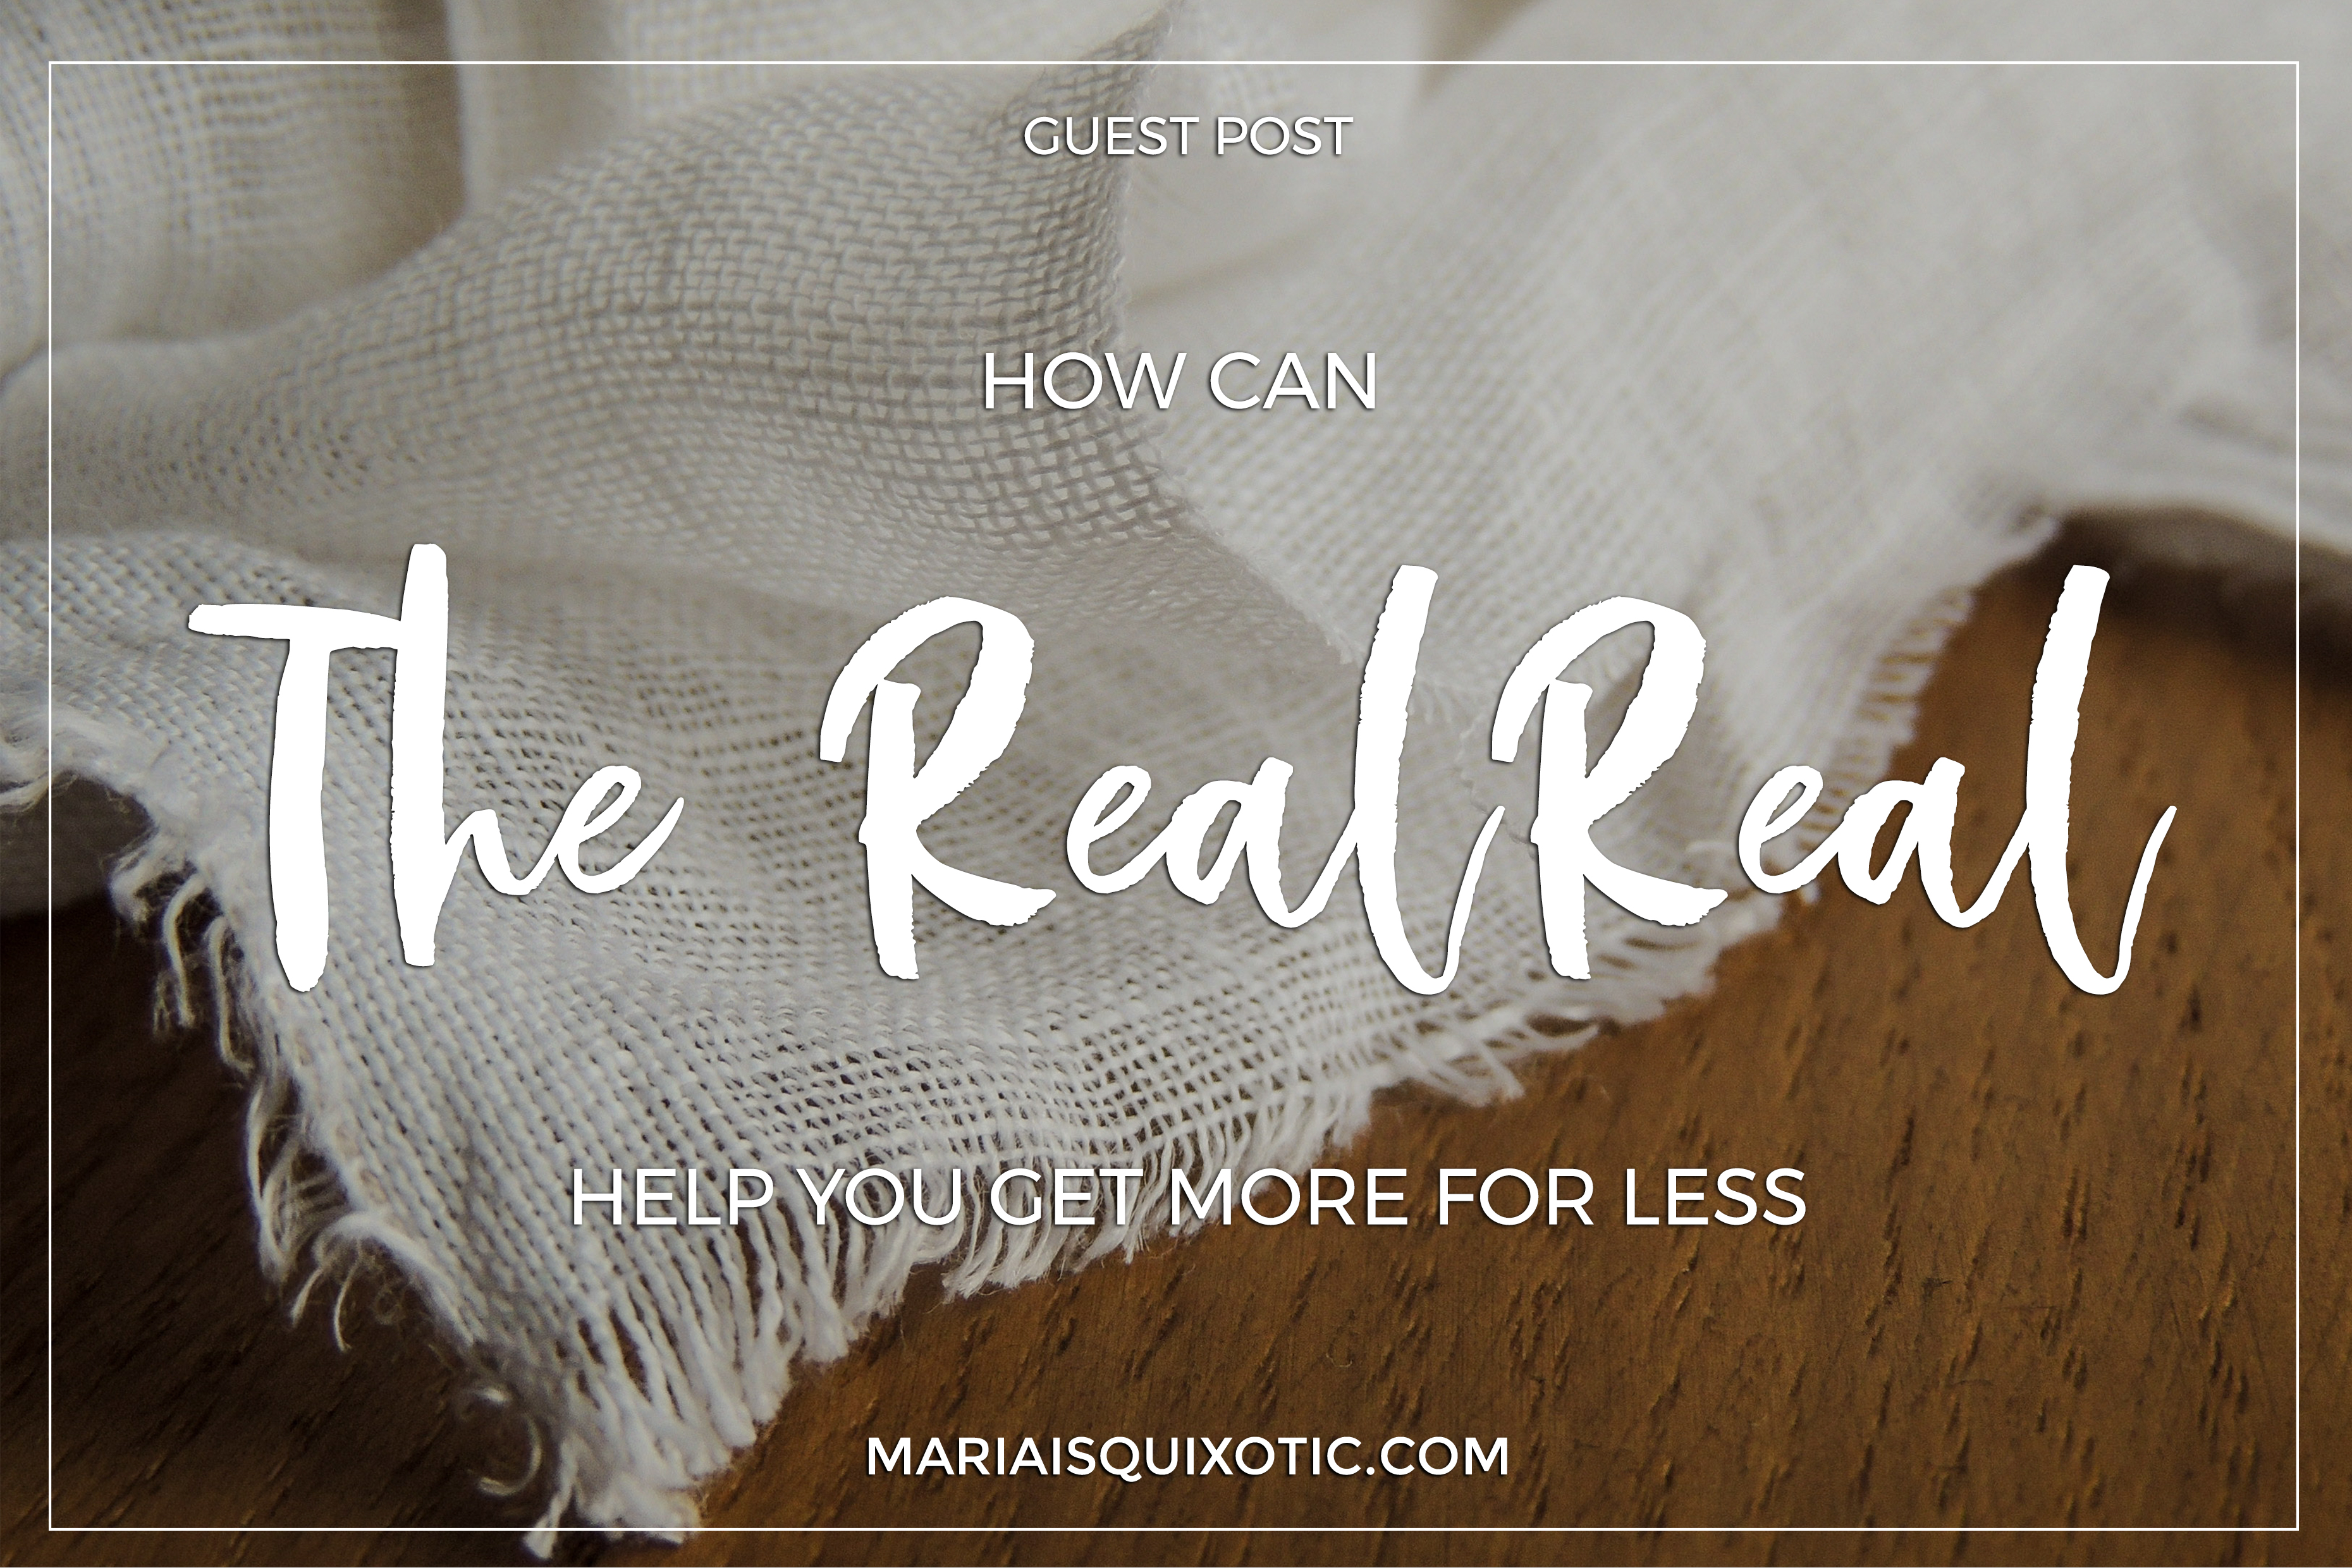 How The RealReal Help You Get More for Less